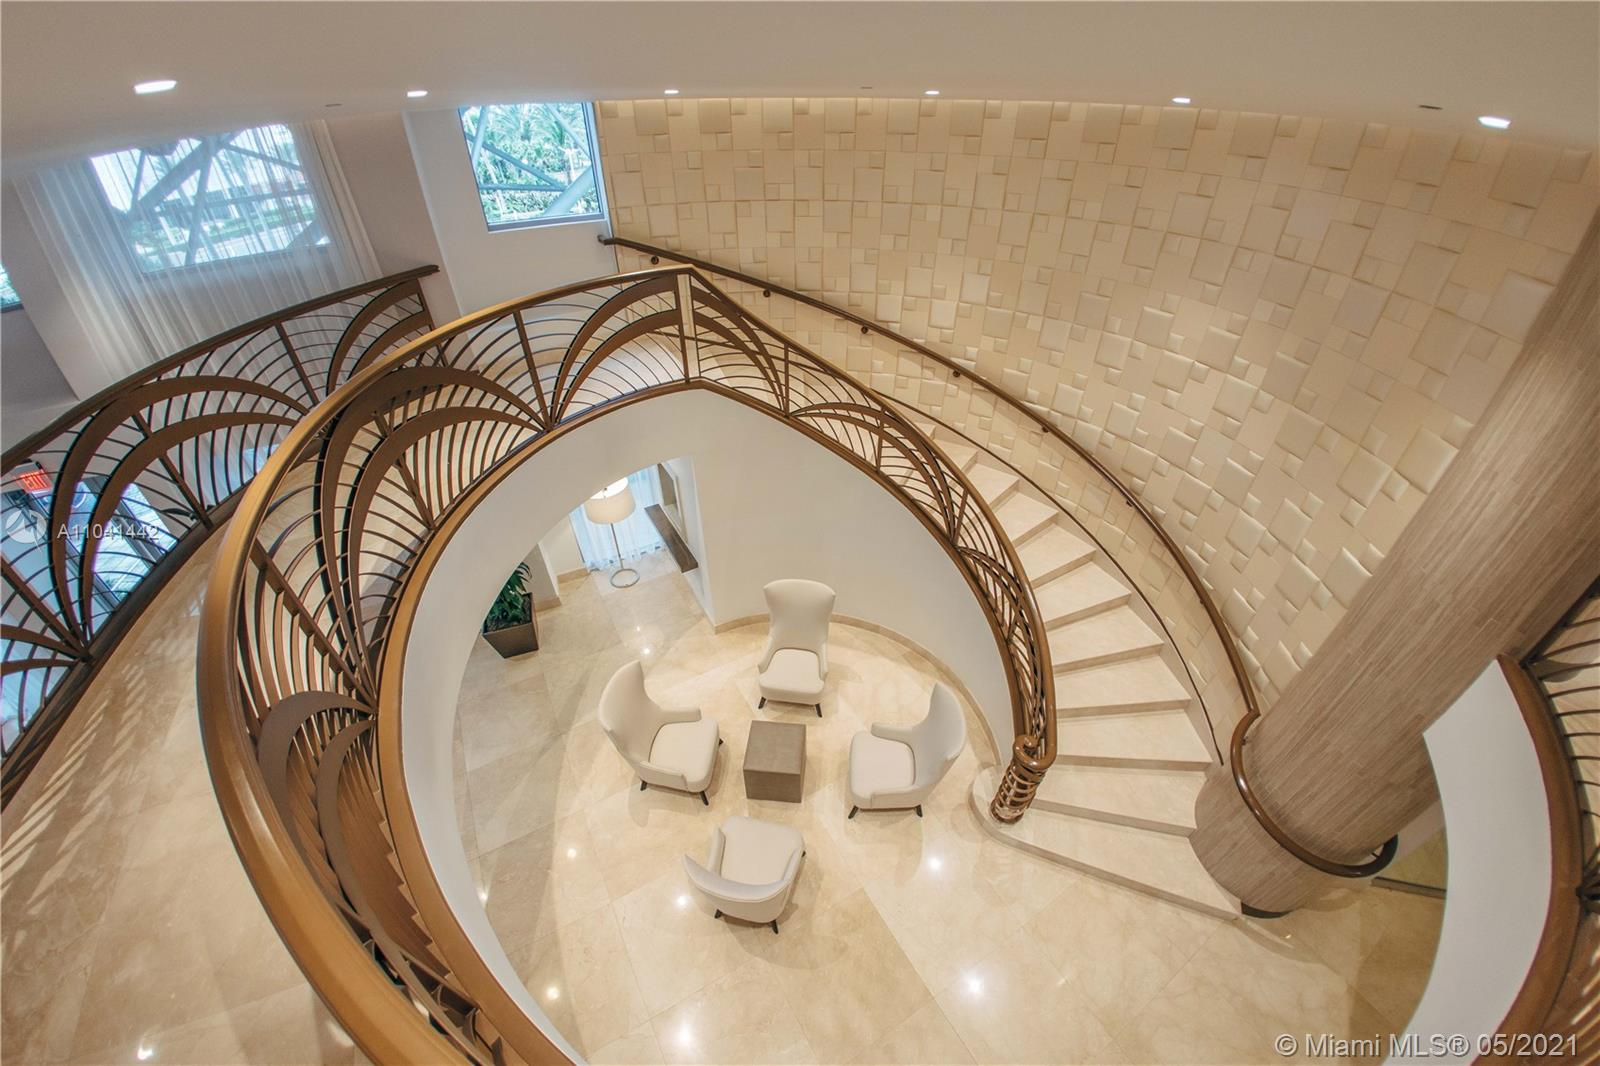 Photo of 17555 Collins Ave - 2,274 FT2* #TS-1 Roof Terrace, Sunny Isles Beach, Florida, 33160 -